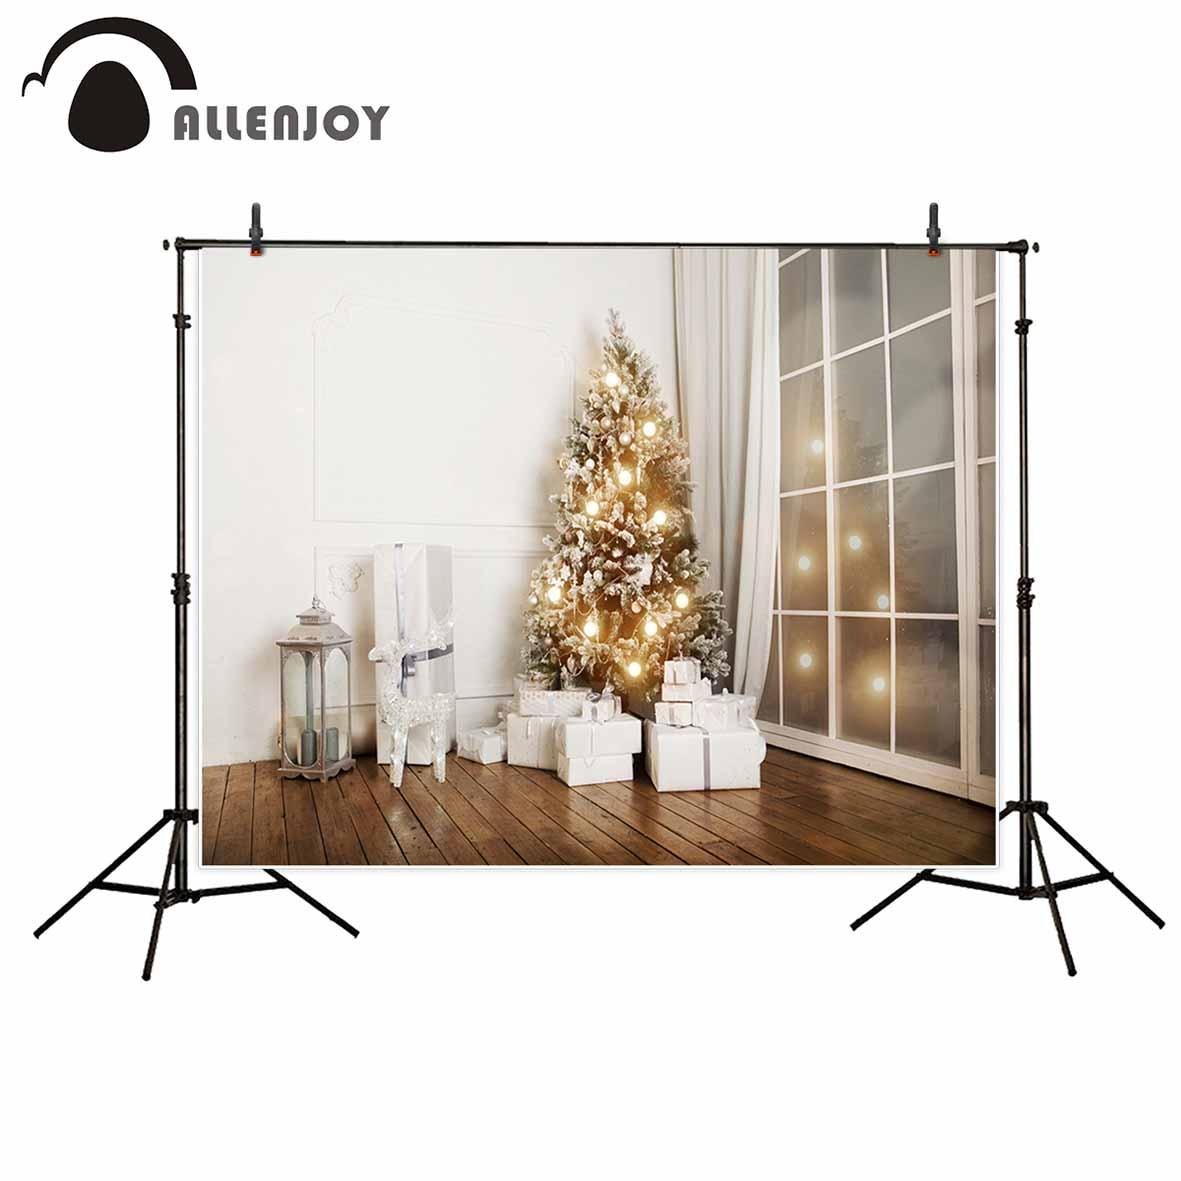 Allenjoy photography Christmas background small bulbs gift wooden floor door backdrop background photography allenjoy christmas photography backdrop wooden fireplace xmas sock gift children s photocall photographic customize festive